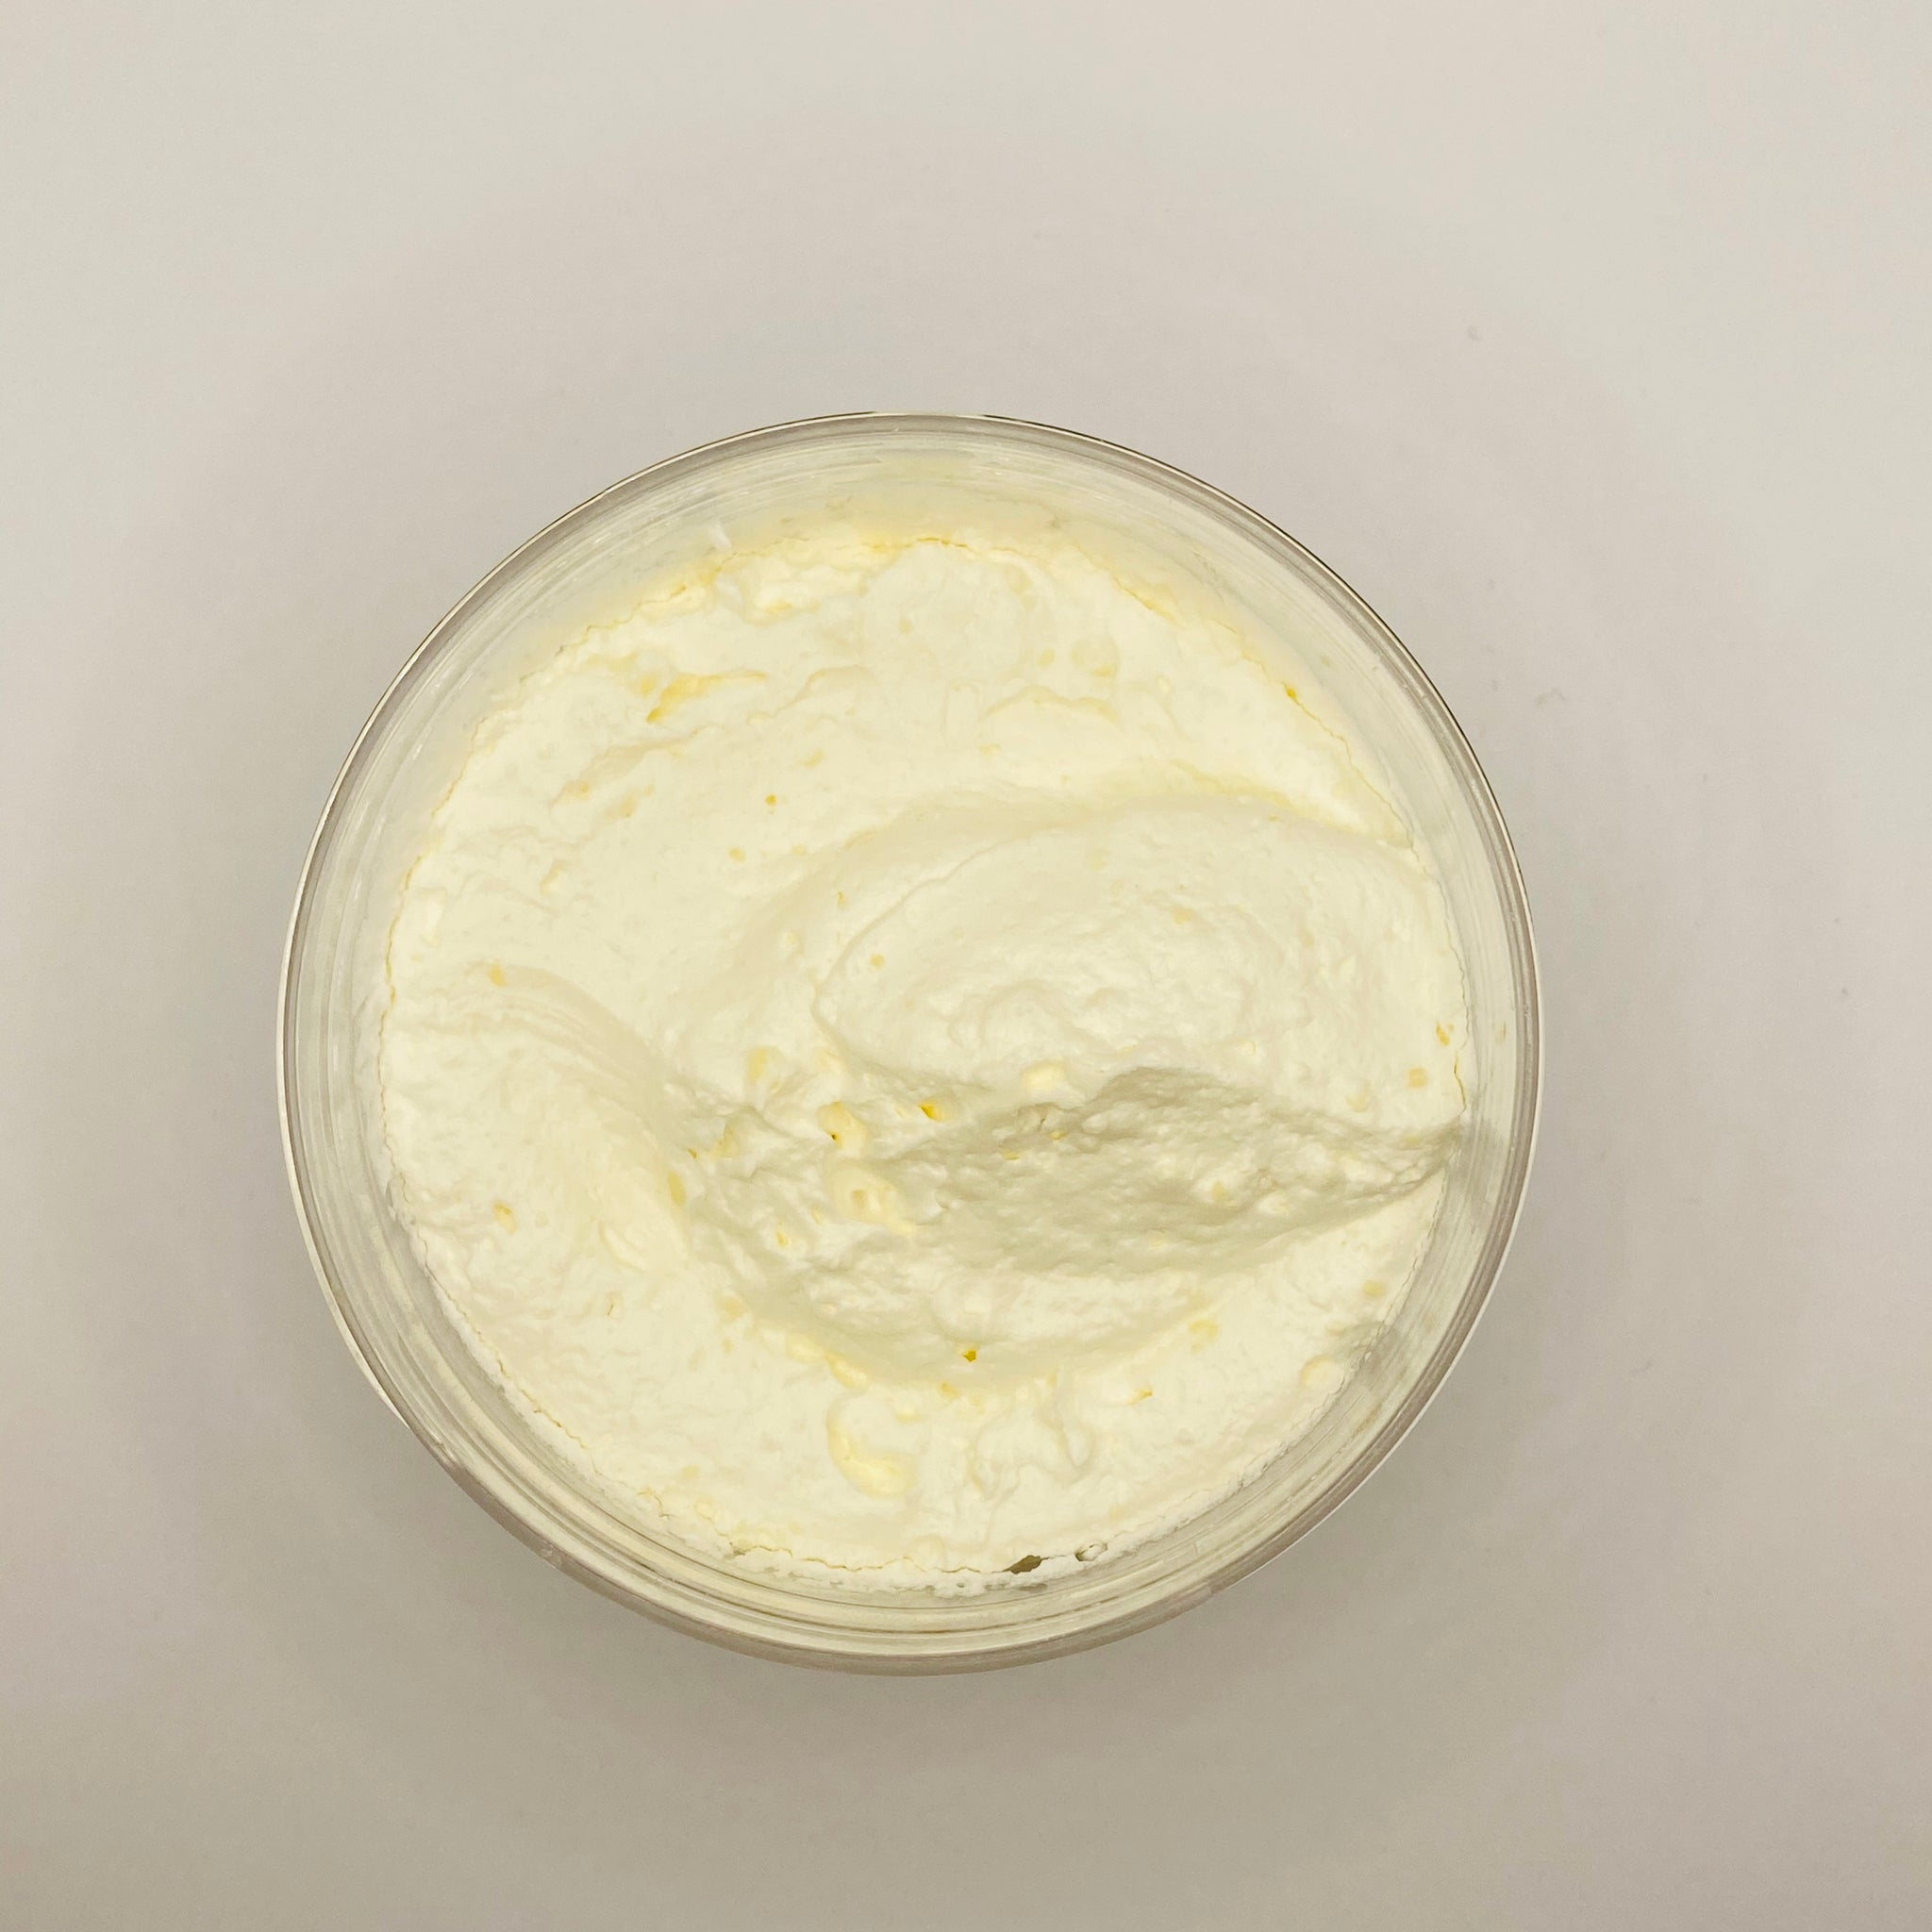 Decadent White Chocolate Body Butter